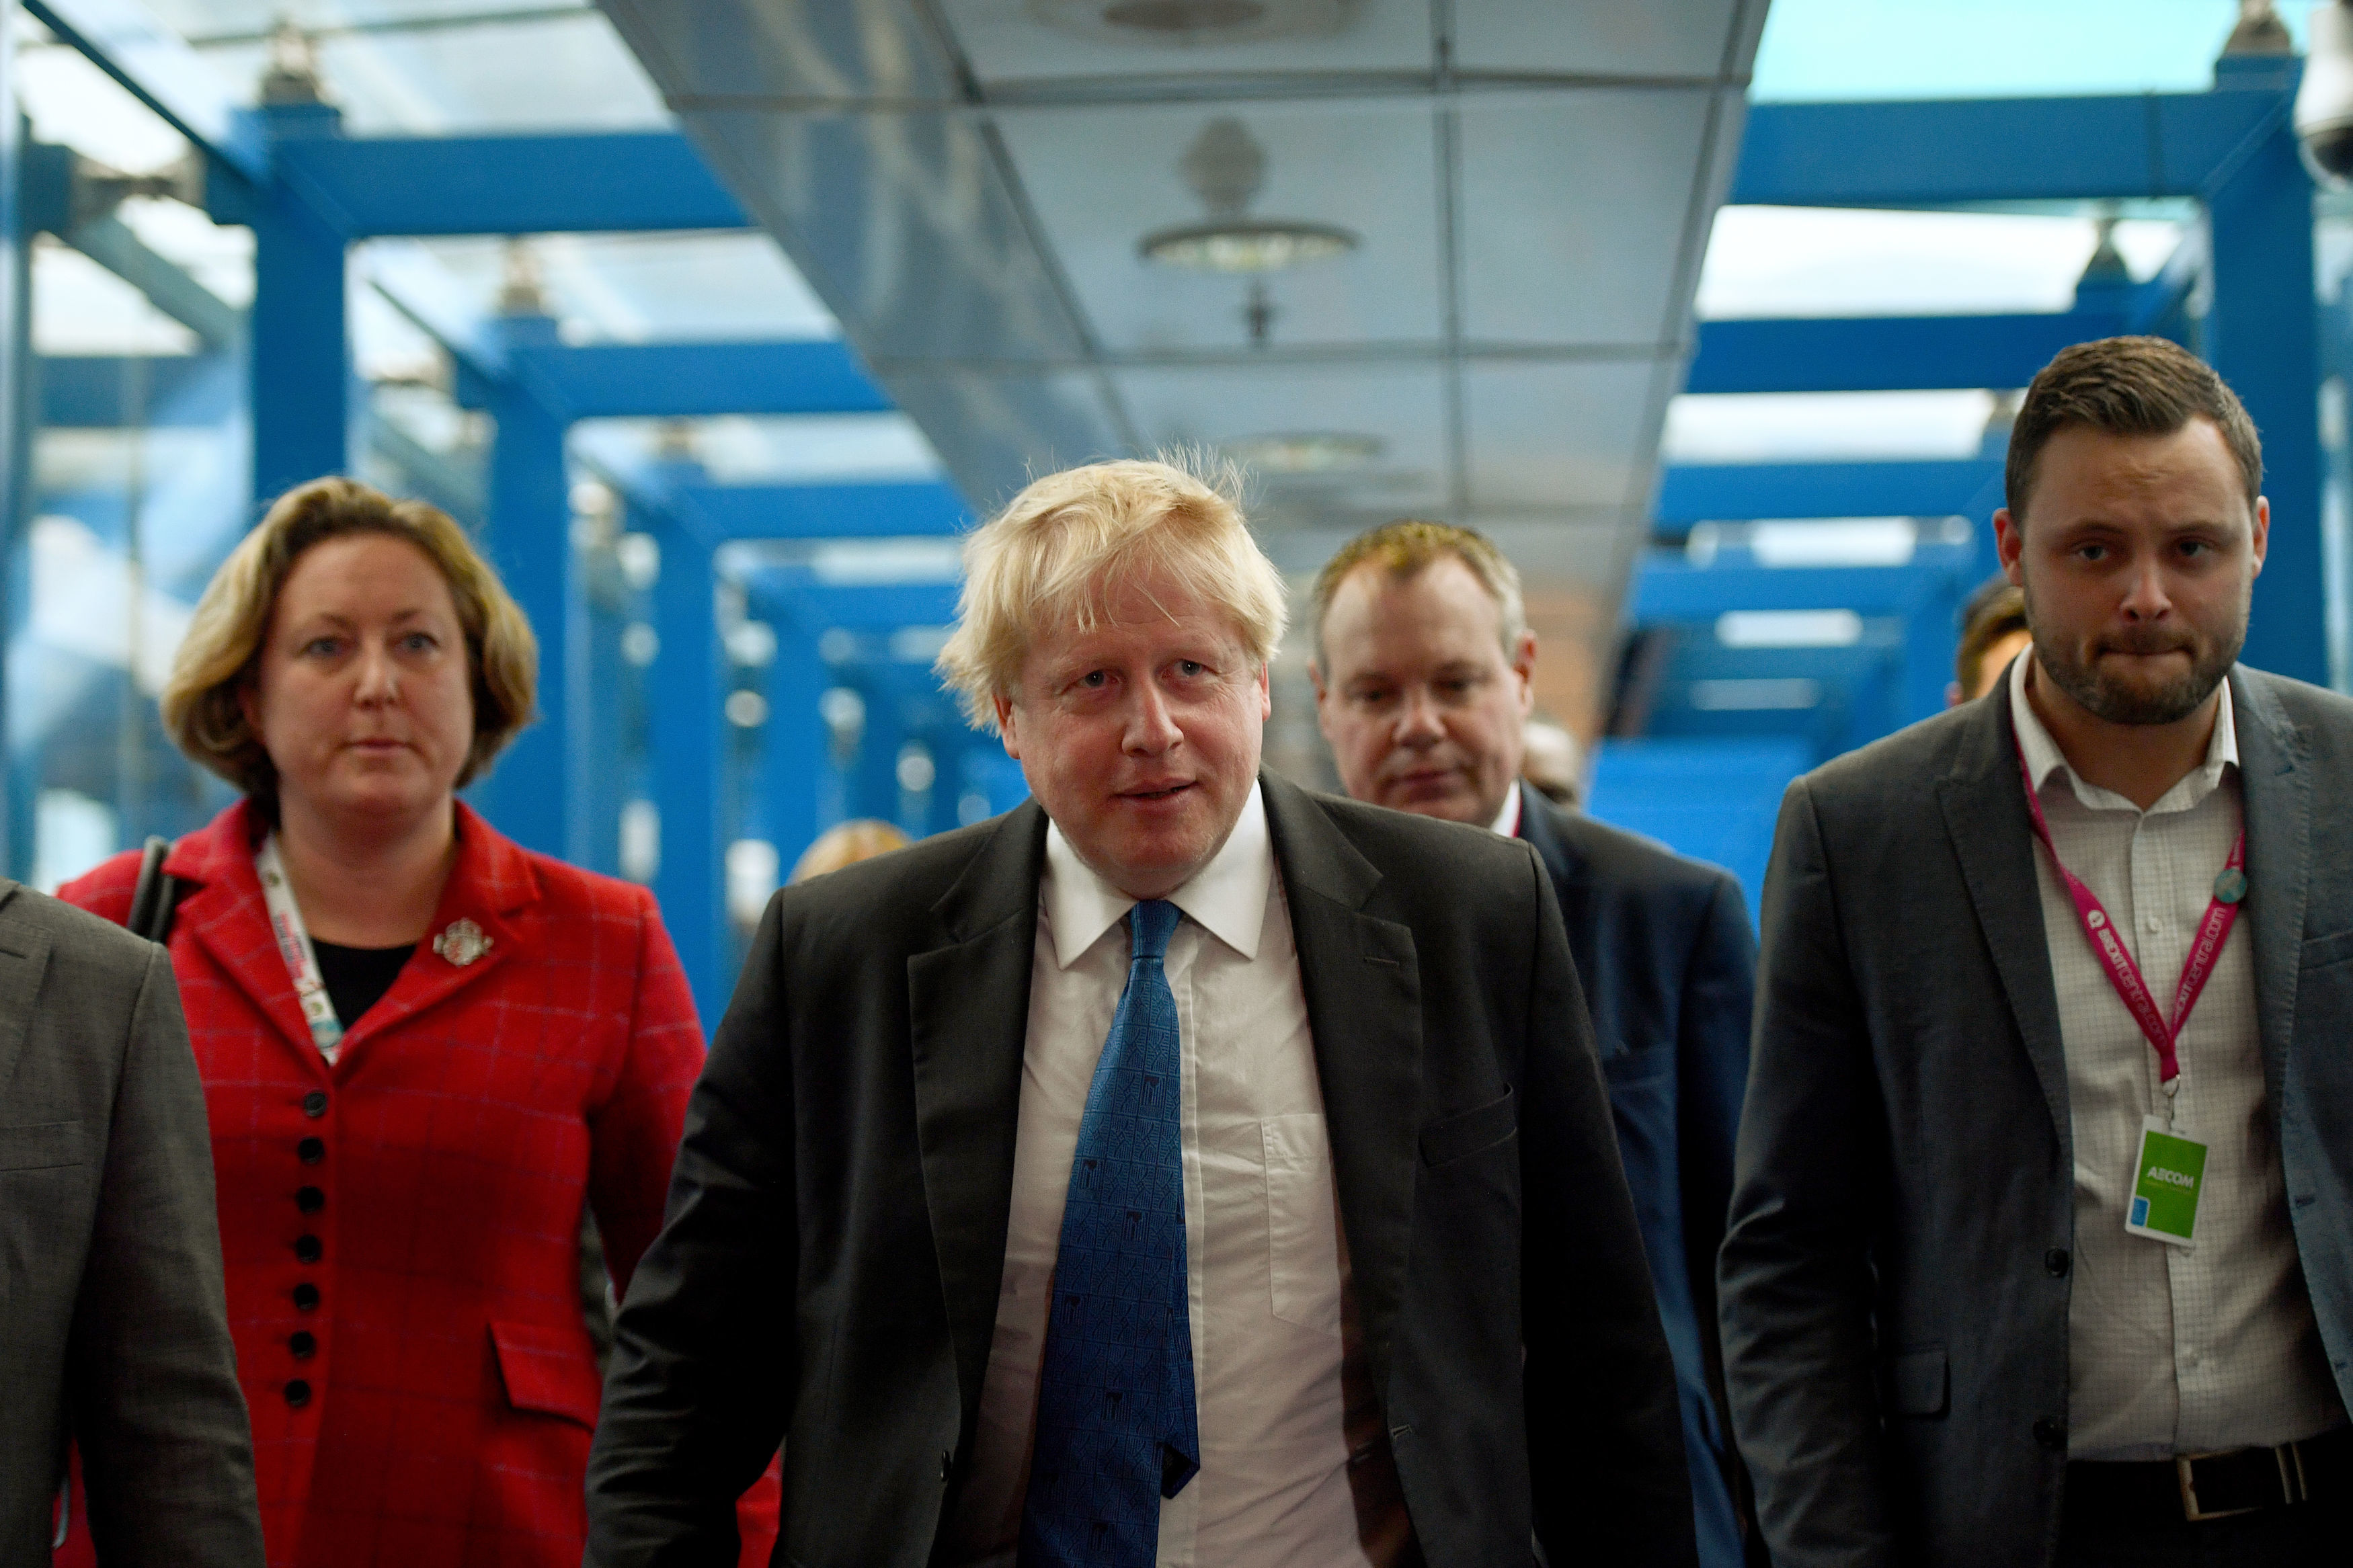 Boris Johnson arrives ahead of his speech at a fringe event at the Conservative Party annual conference at the International Convention Centre, Birmingham.